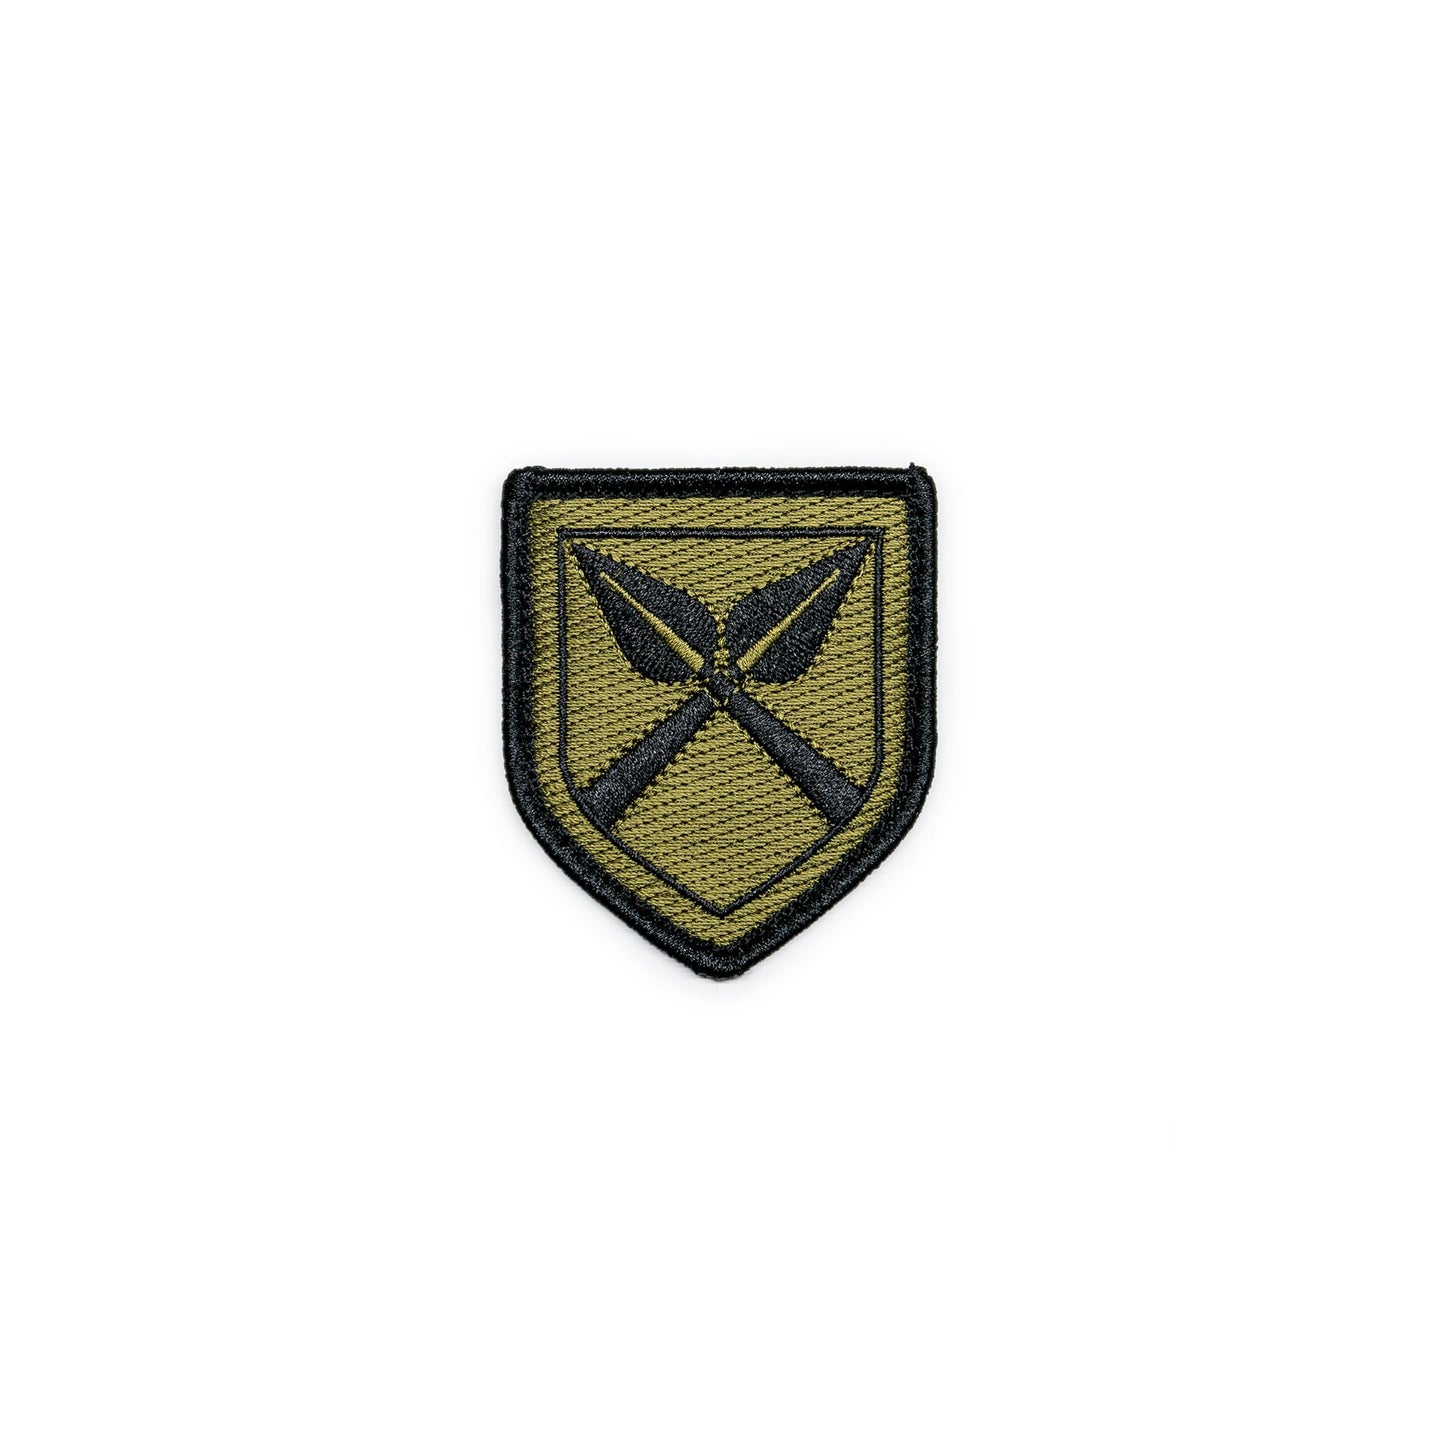 RHODESIAN S.F.A. TEAM LEADER PATCH